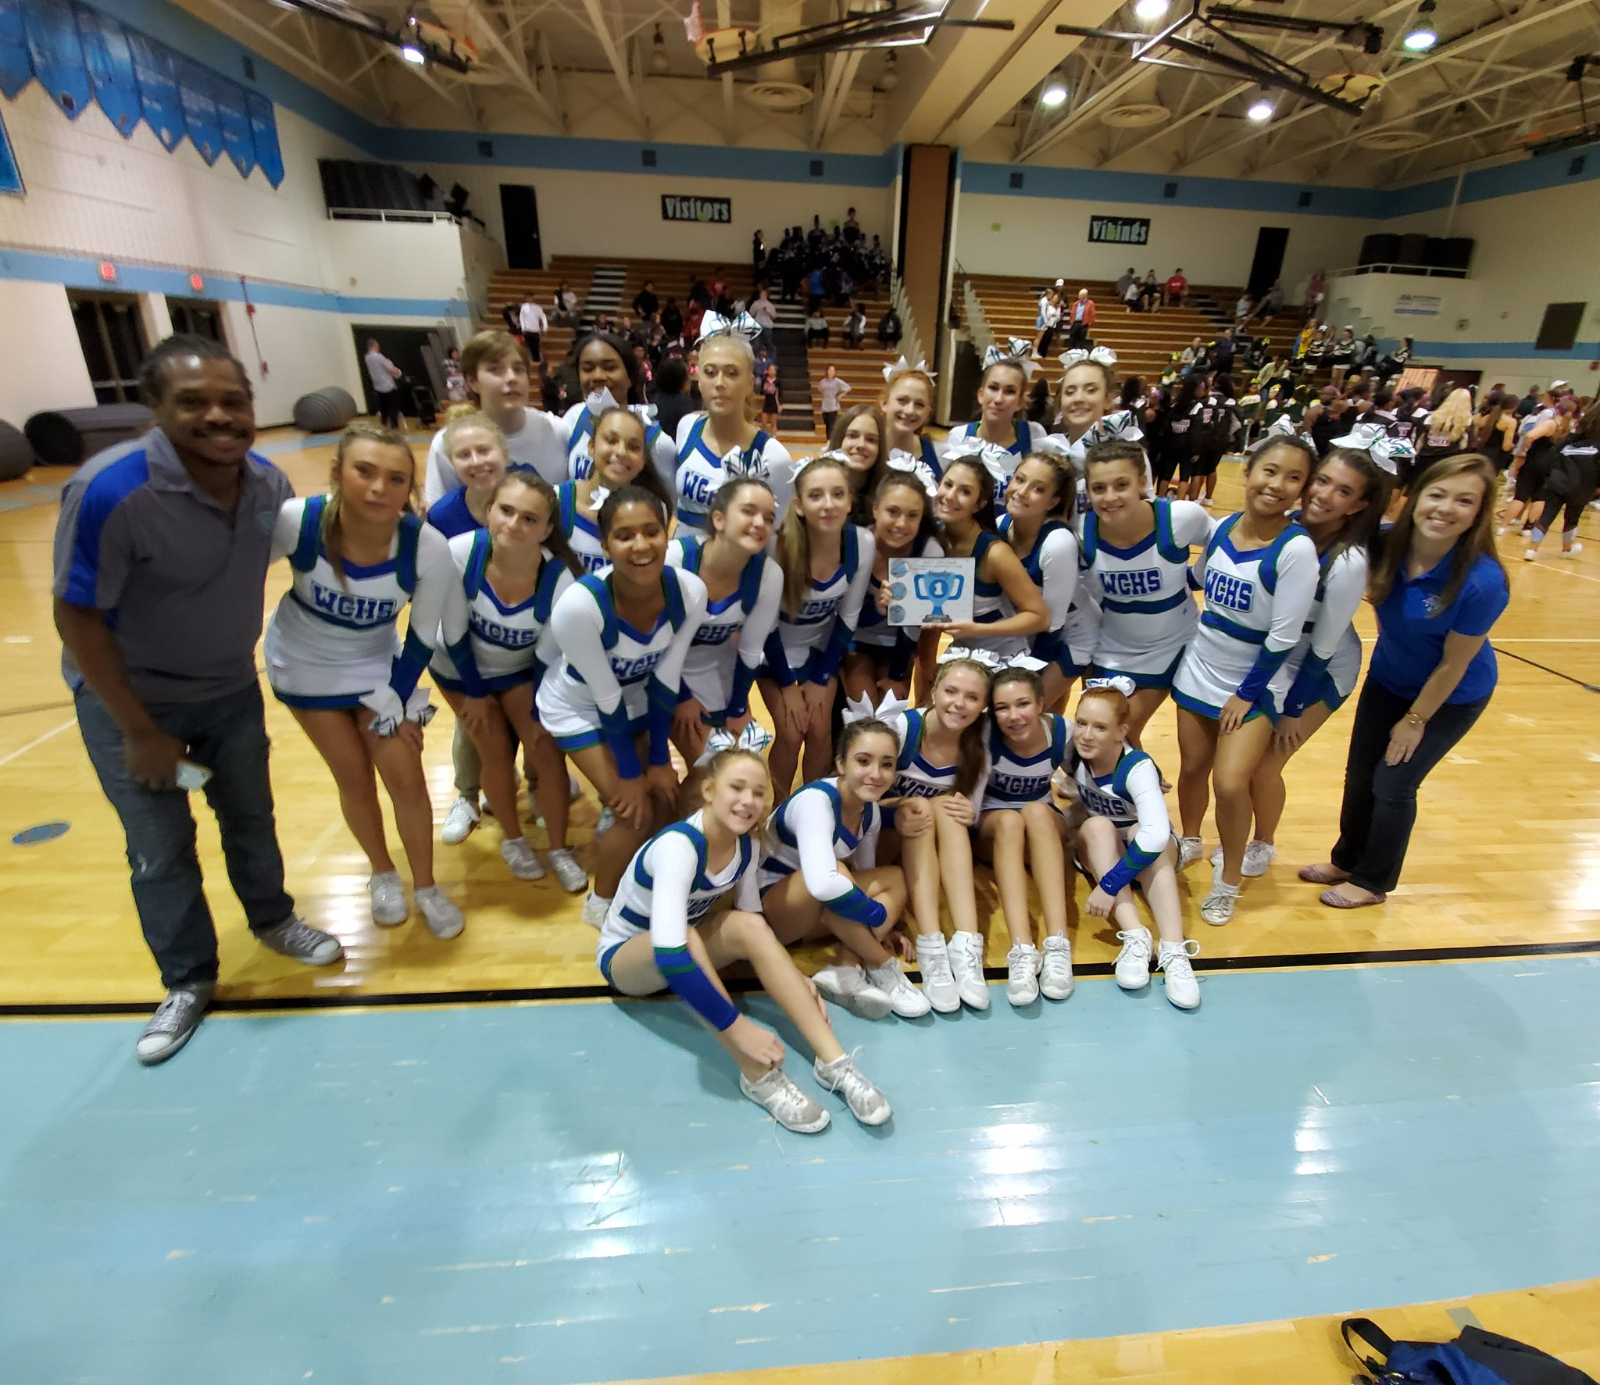 MCPS County Cheer Competition Information